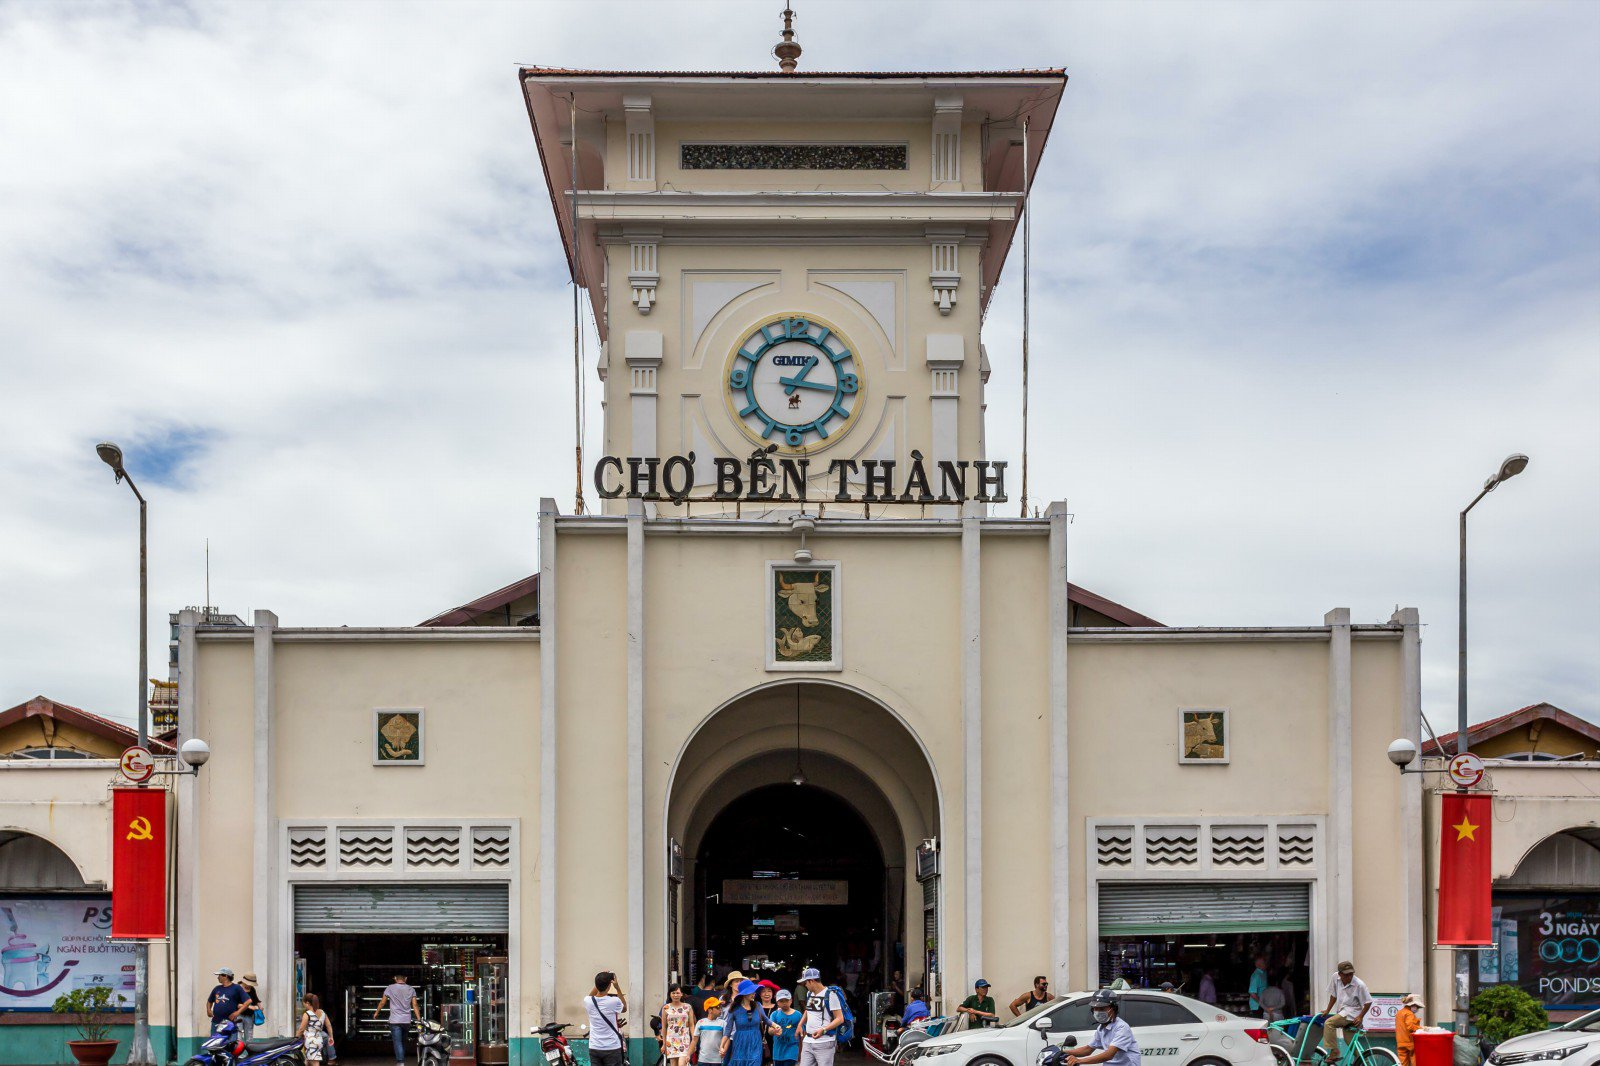 Your Comprehensive Walk-through of Ben Thanh Market